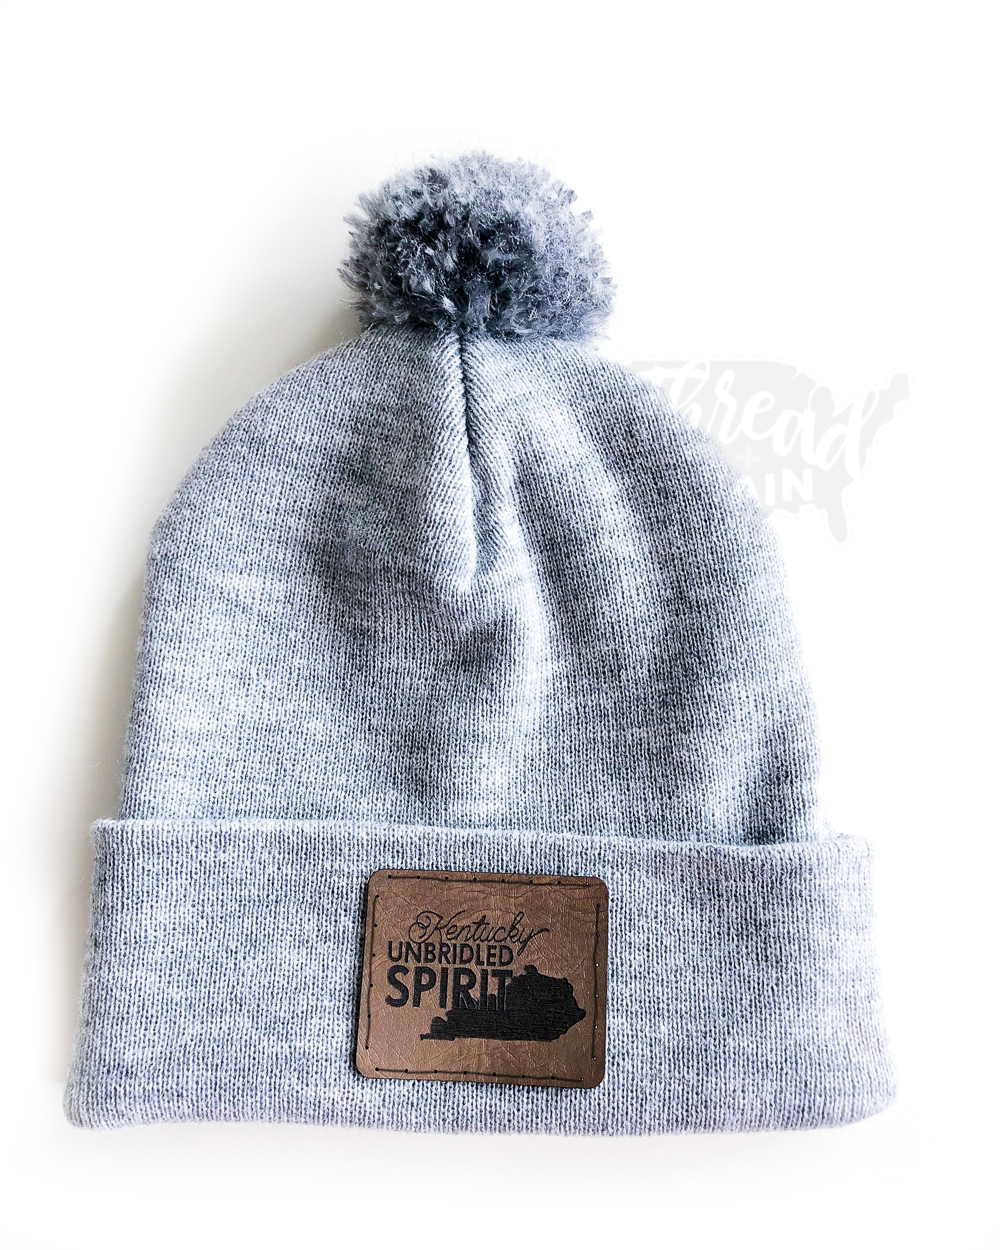 Kentucky :: Unbridled Spirit PATCHED HAT